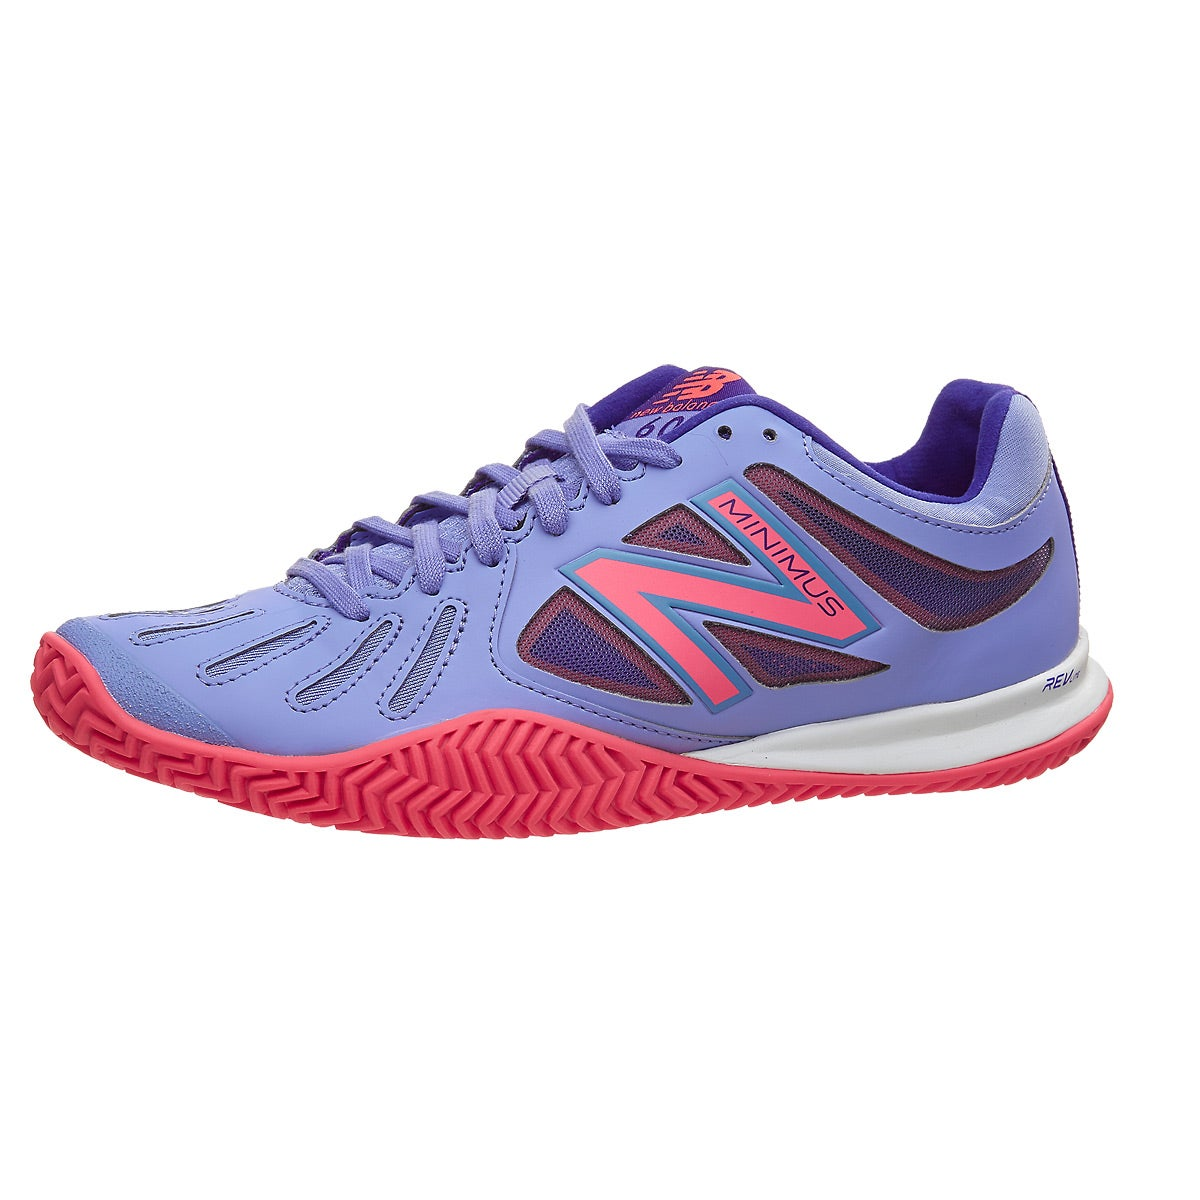 New Balance 60v1 CLAY Blue/Pink Women's Shoe 360° View.